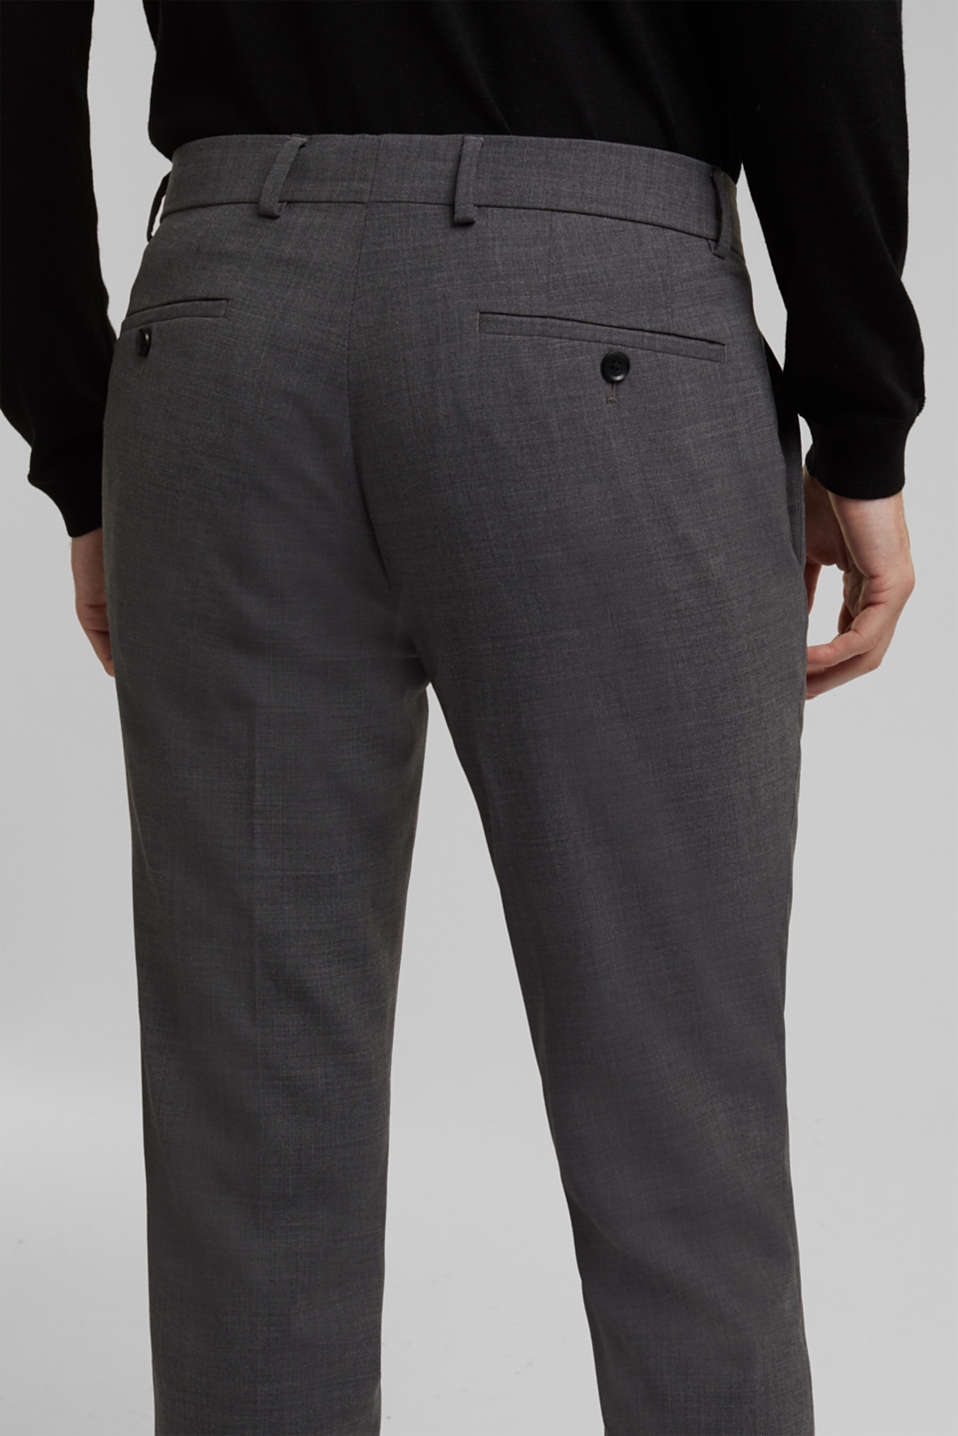 ACTIVE SUIT BLACK trousers made of blended wool, DARK GREY 5, detail image number 3